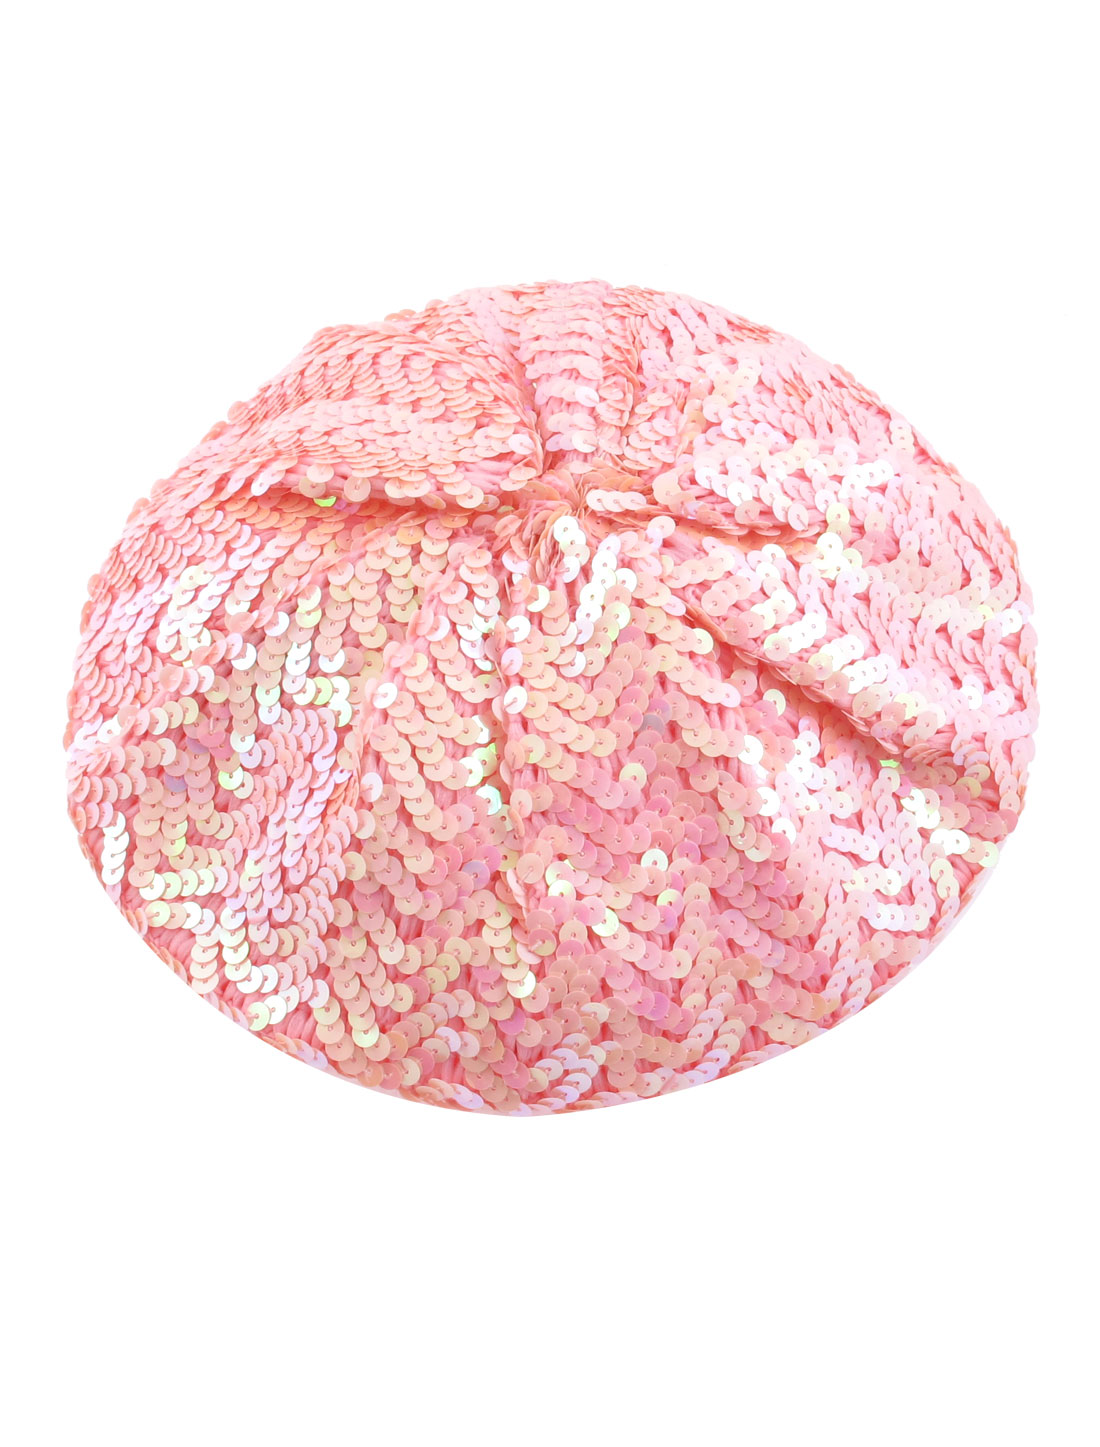 Woman Stretch Shimmer Sparkly Shining Sequin Costume Beret Cap Beanie Hat Pink